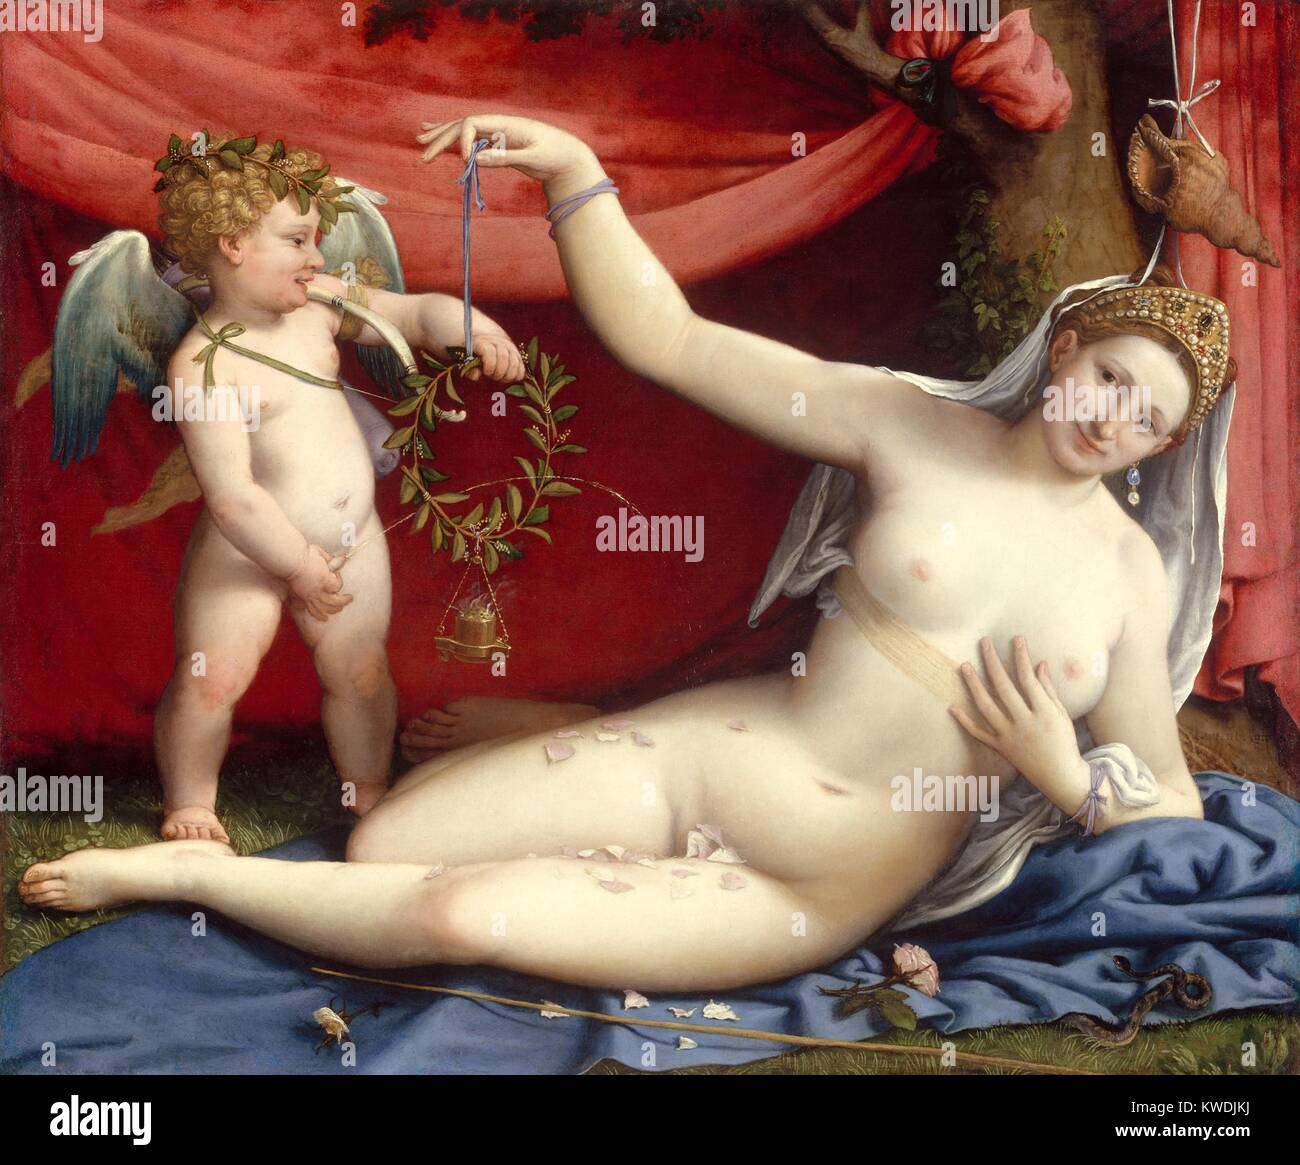 VENUS AND CUPID, by Lorenzo Lotto, 1520s, Italian Renaissance painting, oil on canvas. This work was painted to - Stock Image